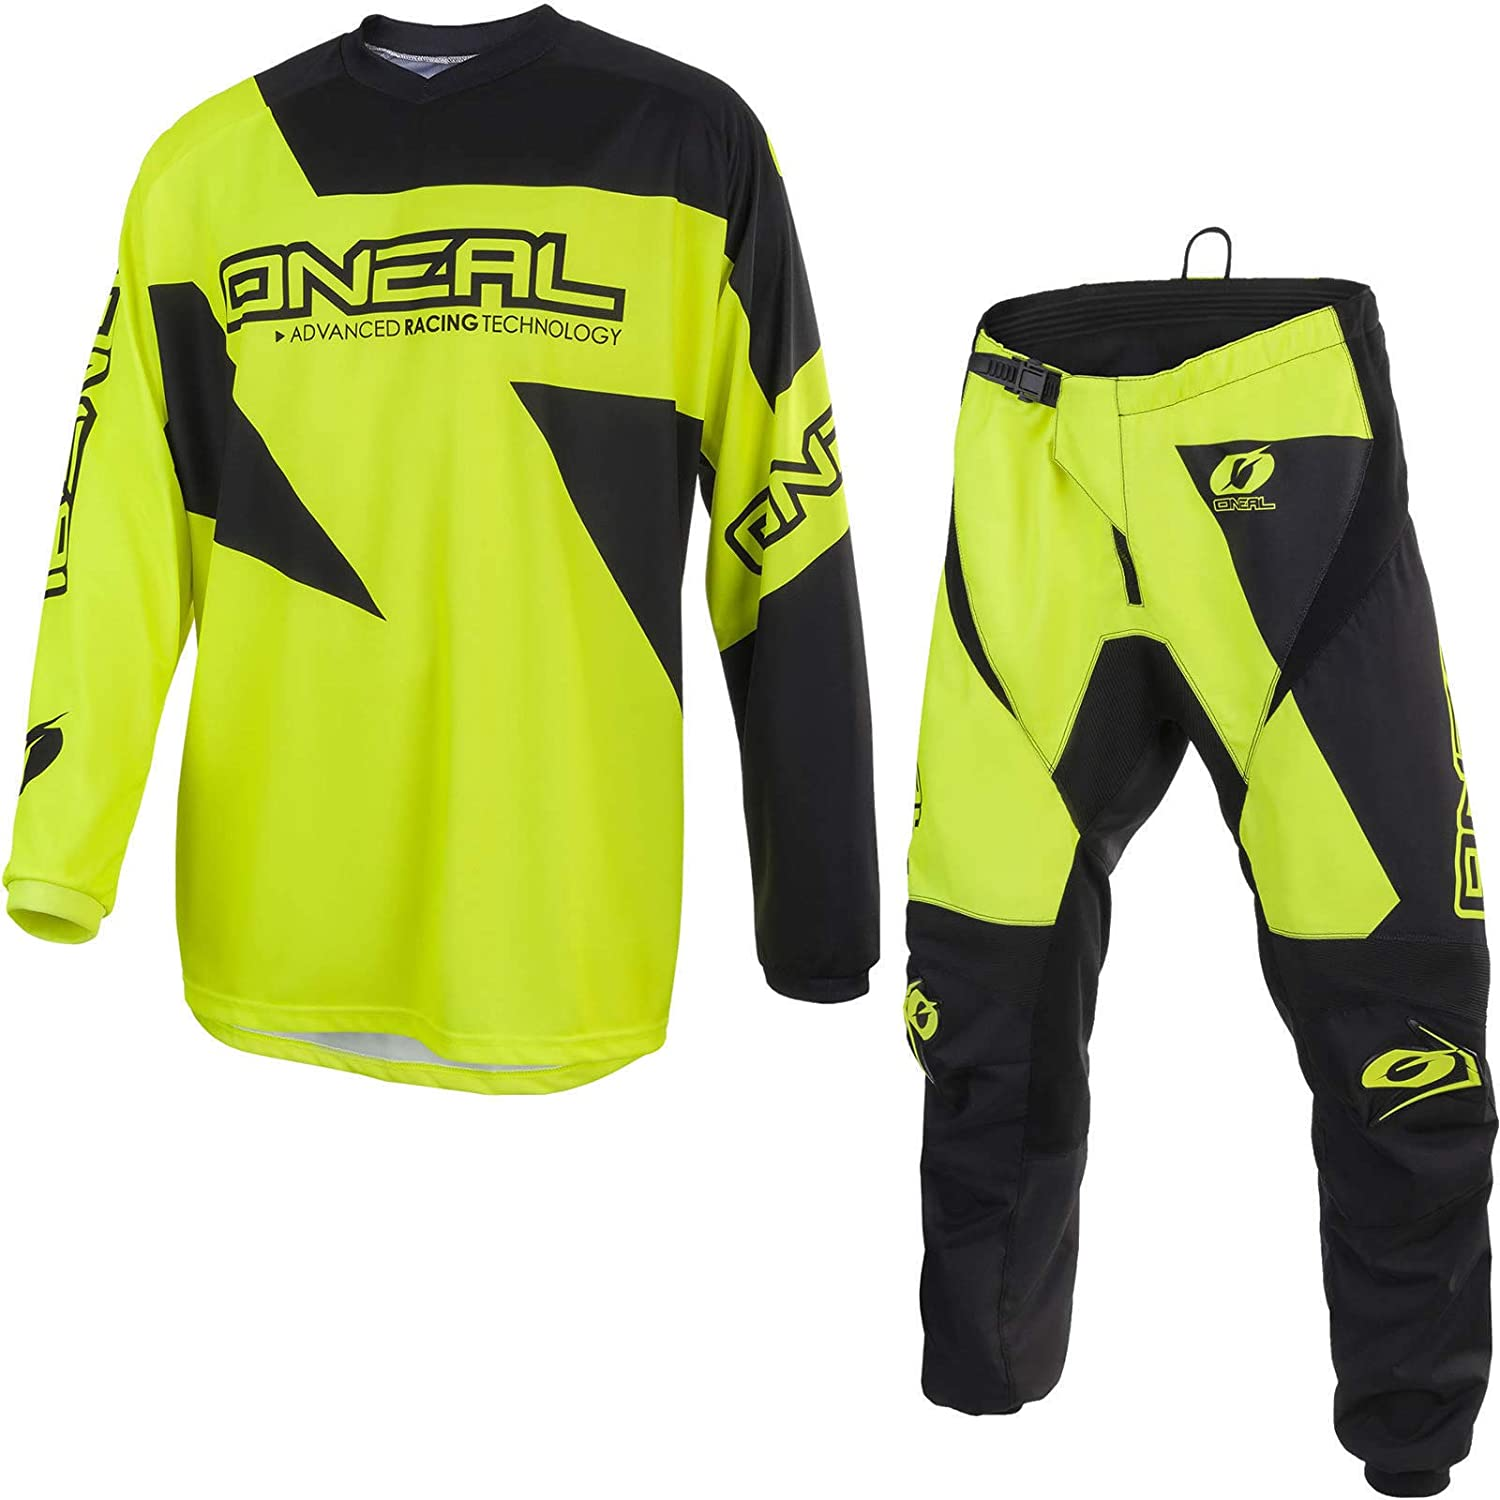 2019 ONEAL MATRIX Adult MX Motorcycle ATV Quad Dirt Bike Enduro Motocross Gear Protective Clothing Off Road Race Suit (NEON YELLOW) (YELLOW : TOP (L), PANT : 36 inches)